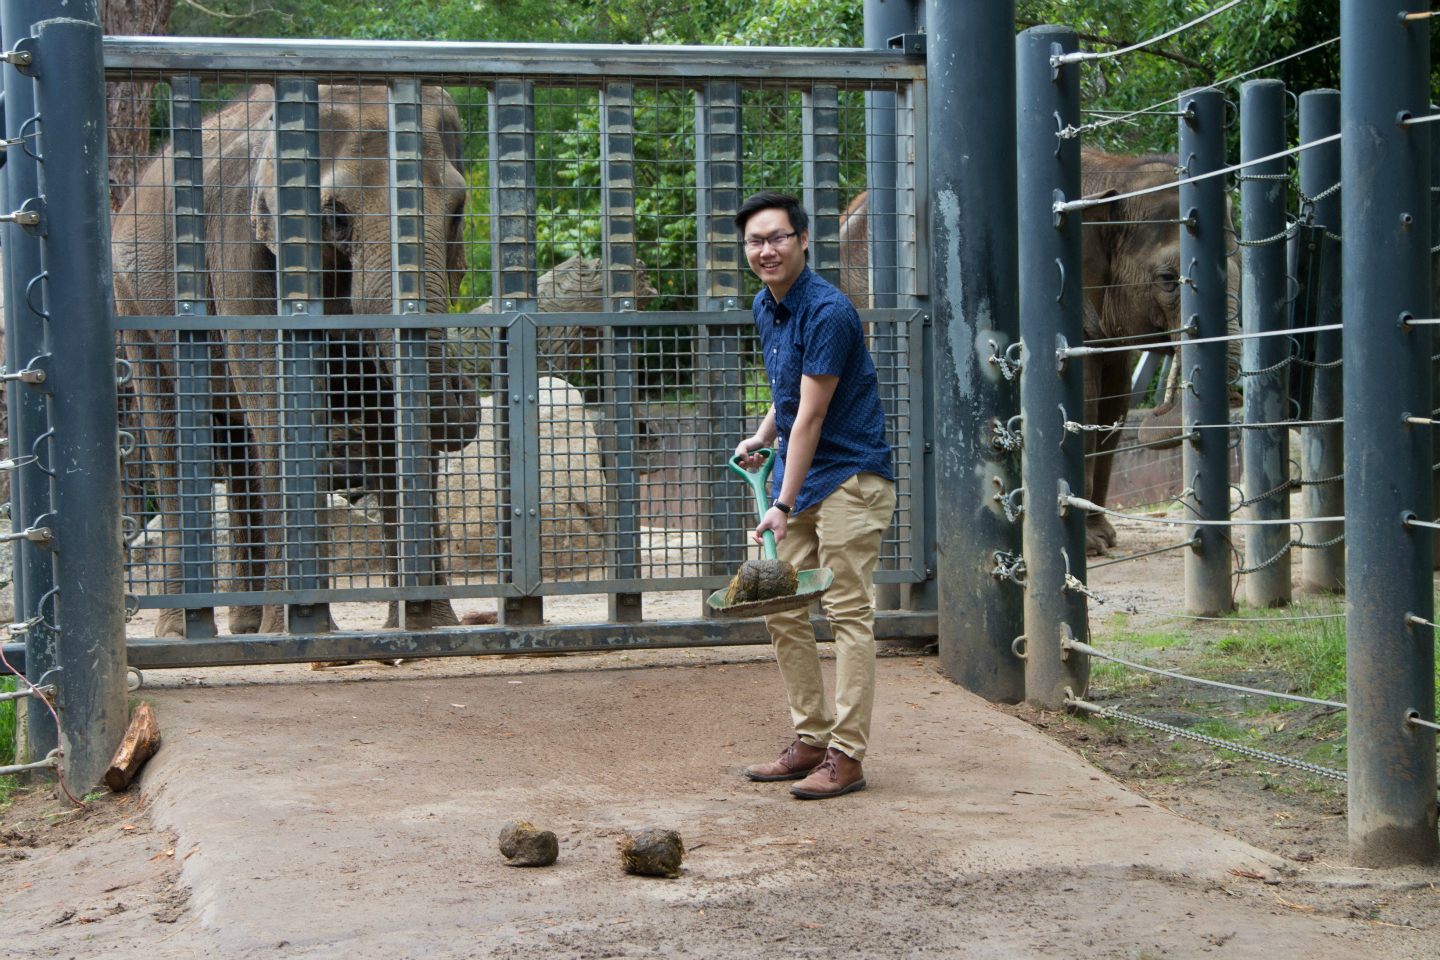 Young man shovelling elephant poo in front of elephants at Melbourne Zoo